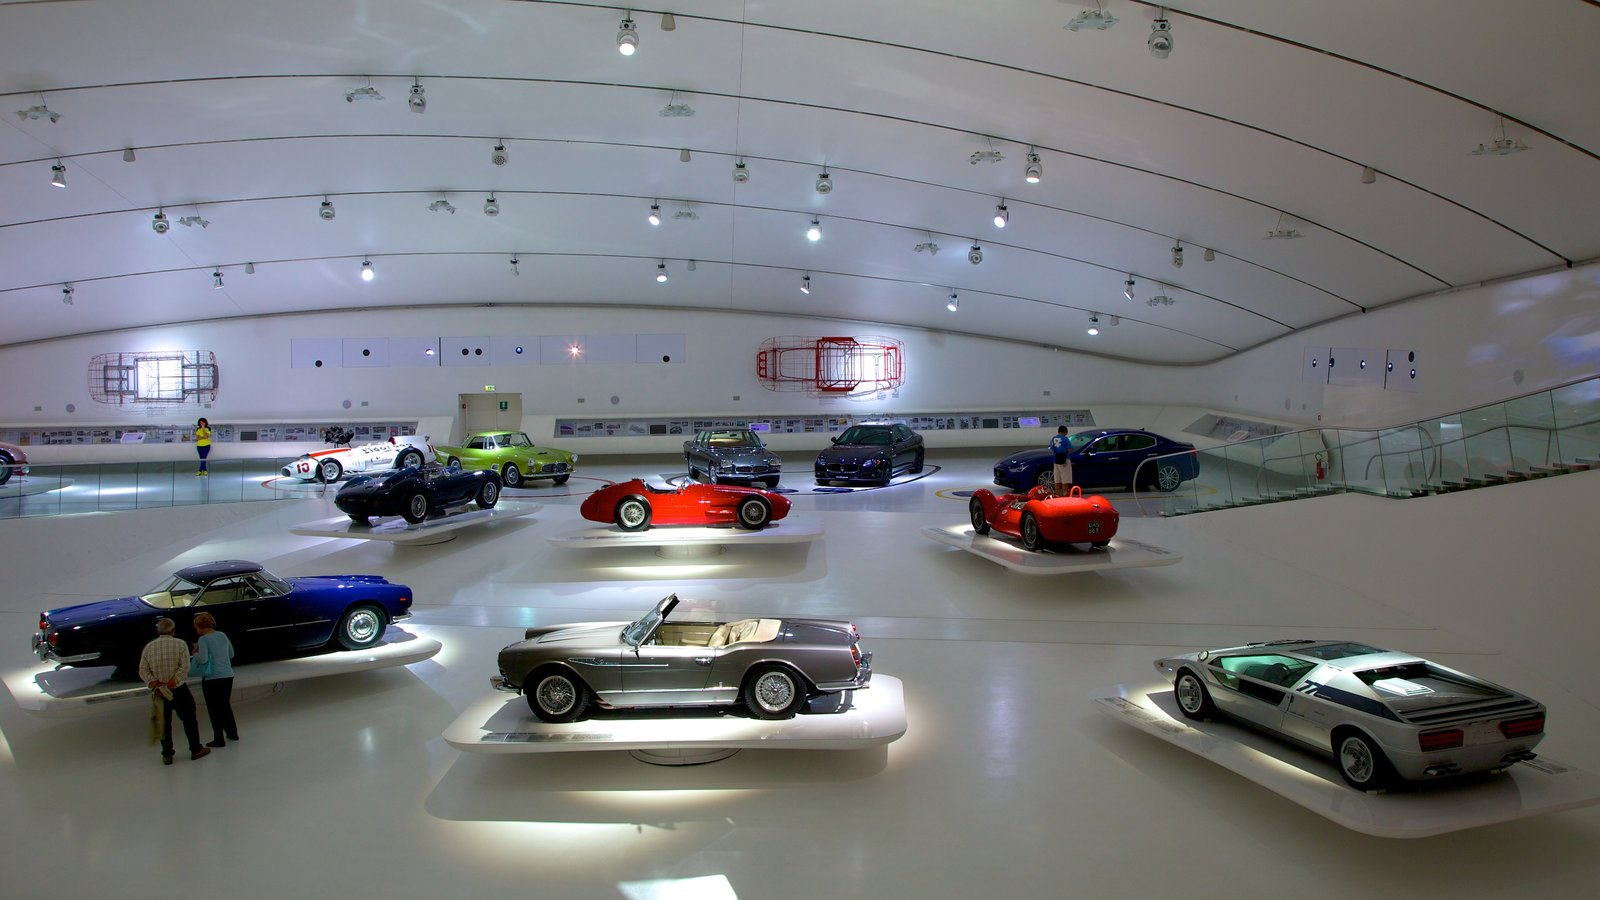 Museo Casa Enzo Ferrari which includes interior views